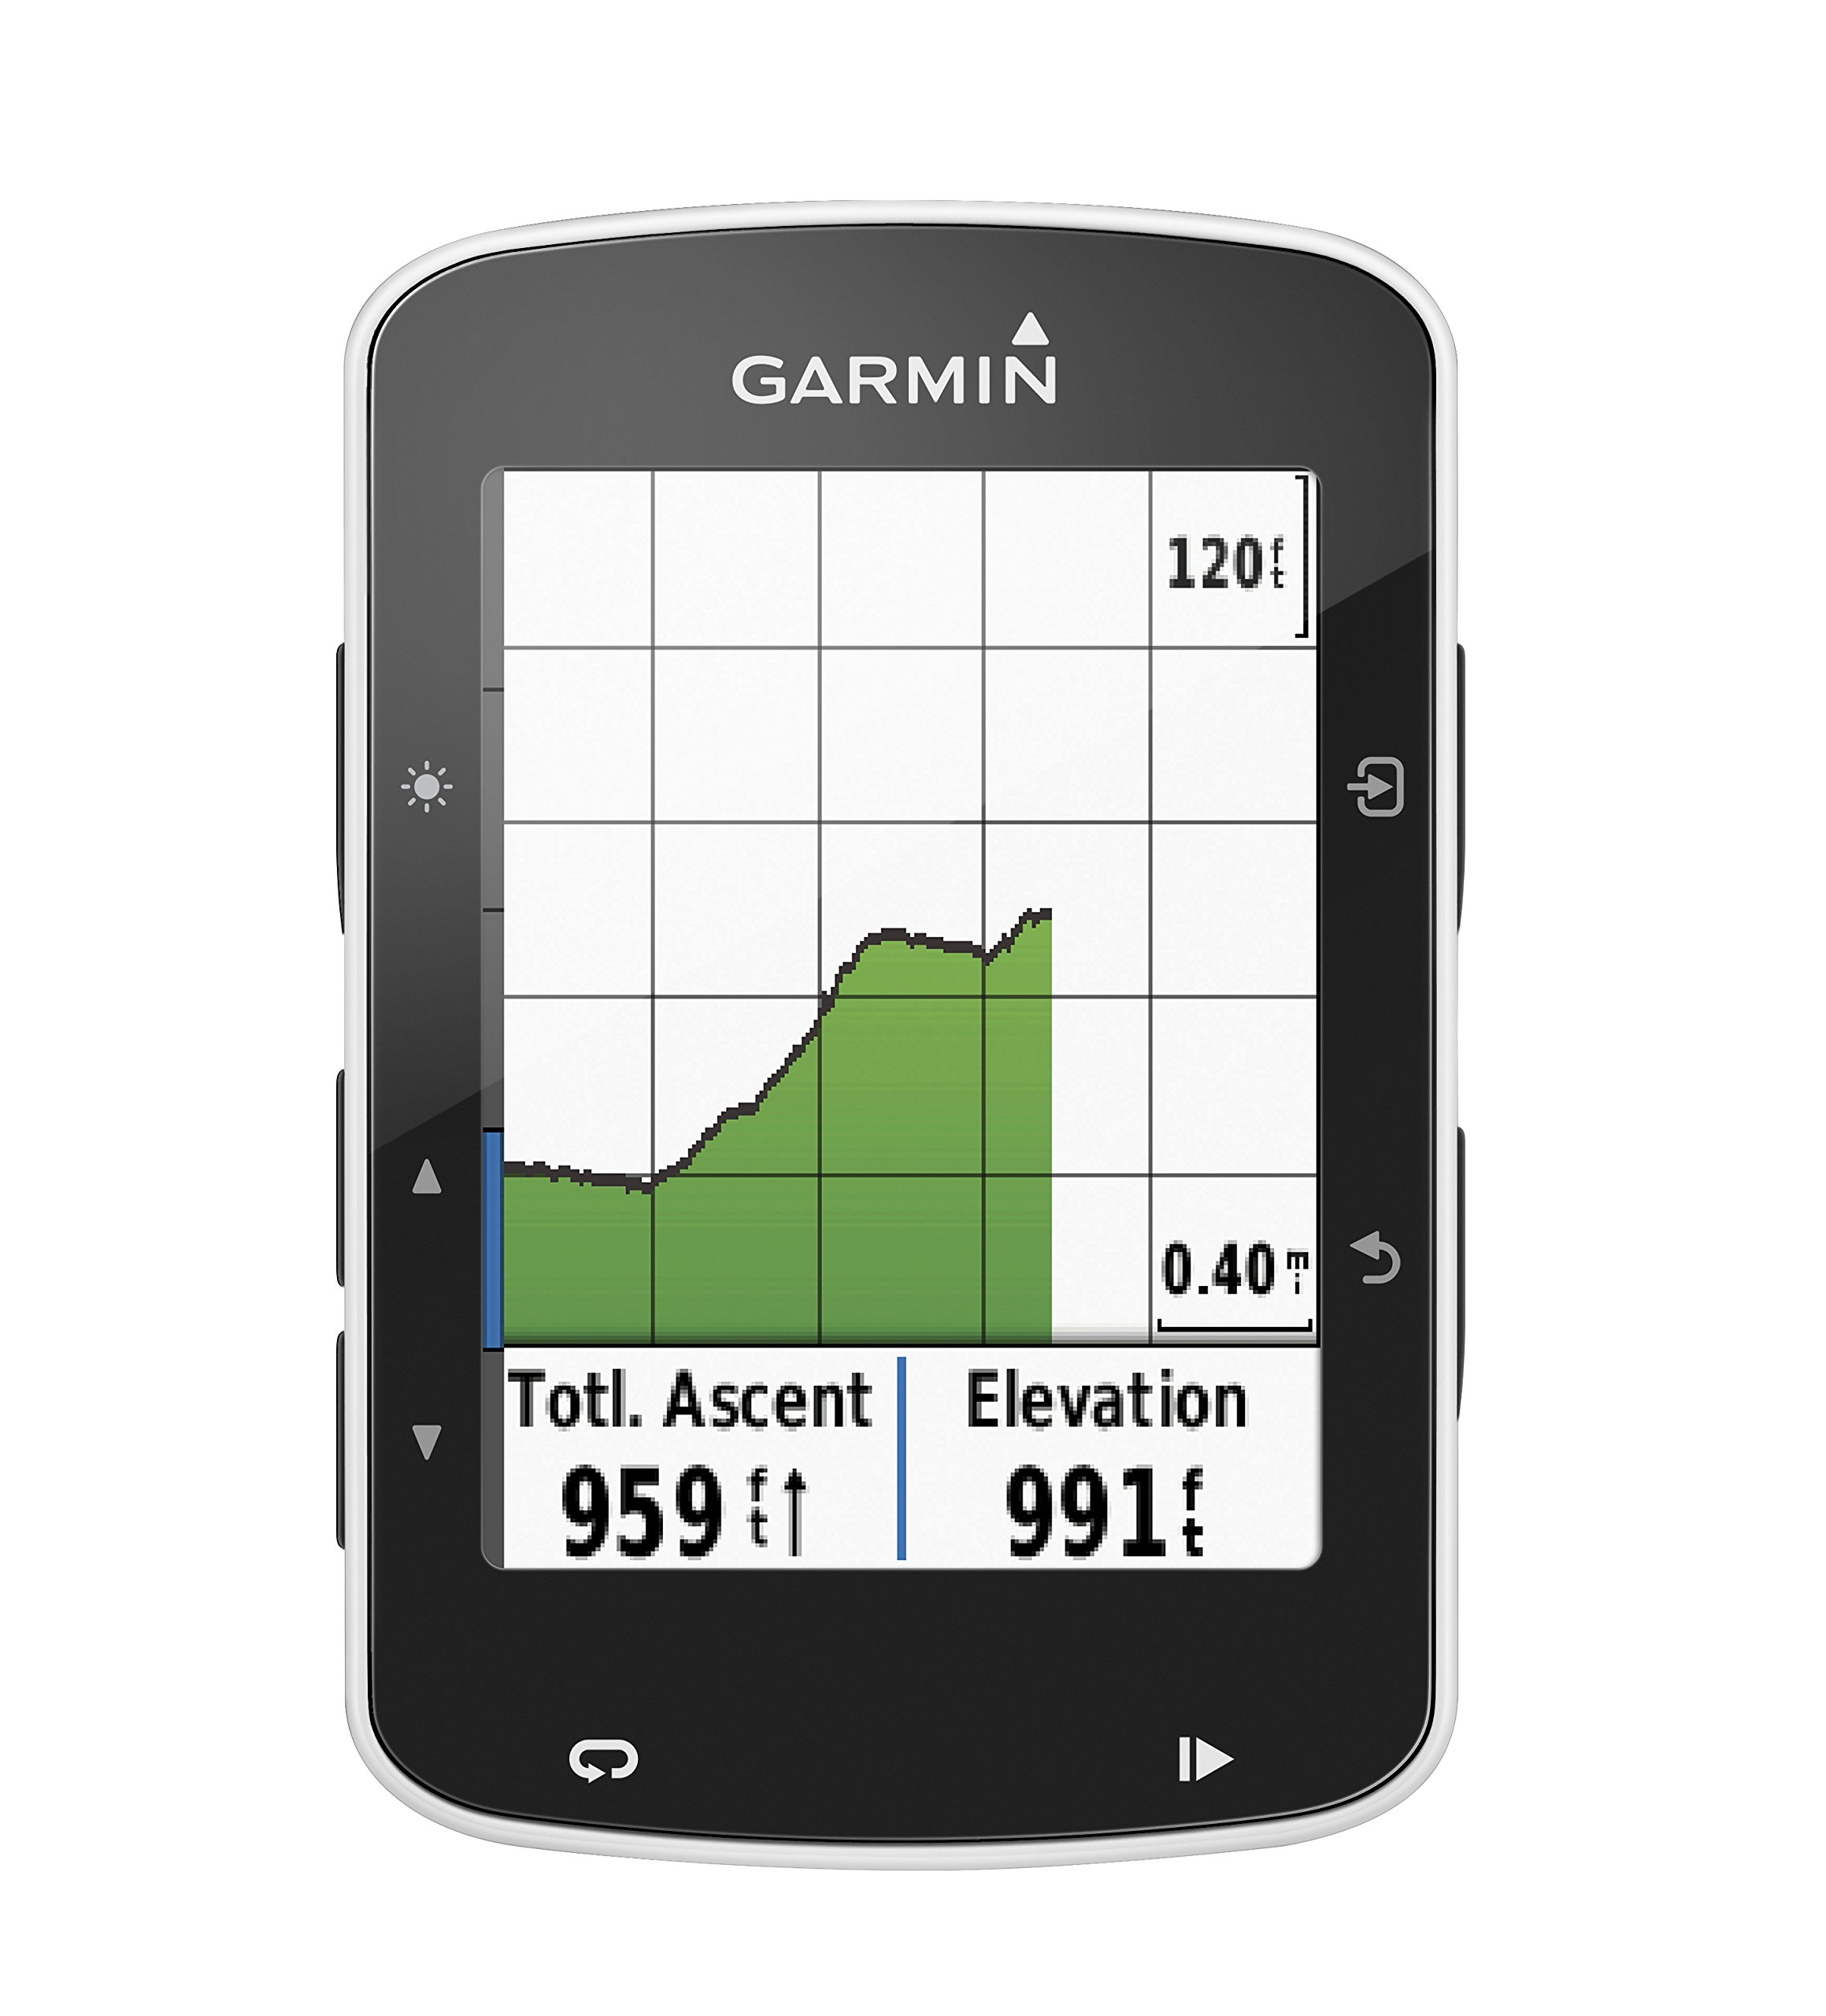 Garmin Edge 520 with PlayBetter Portable USB Charger, Hard Carrying Case, Bike Mounts & USB Cable POWER BUNDLE | High-Res Color Display | GPS Bike Computer by PlayBetter (Image #4)